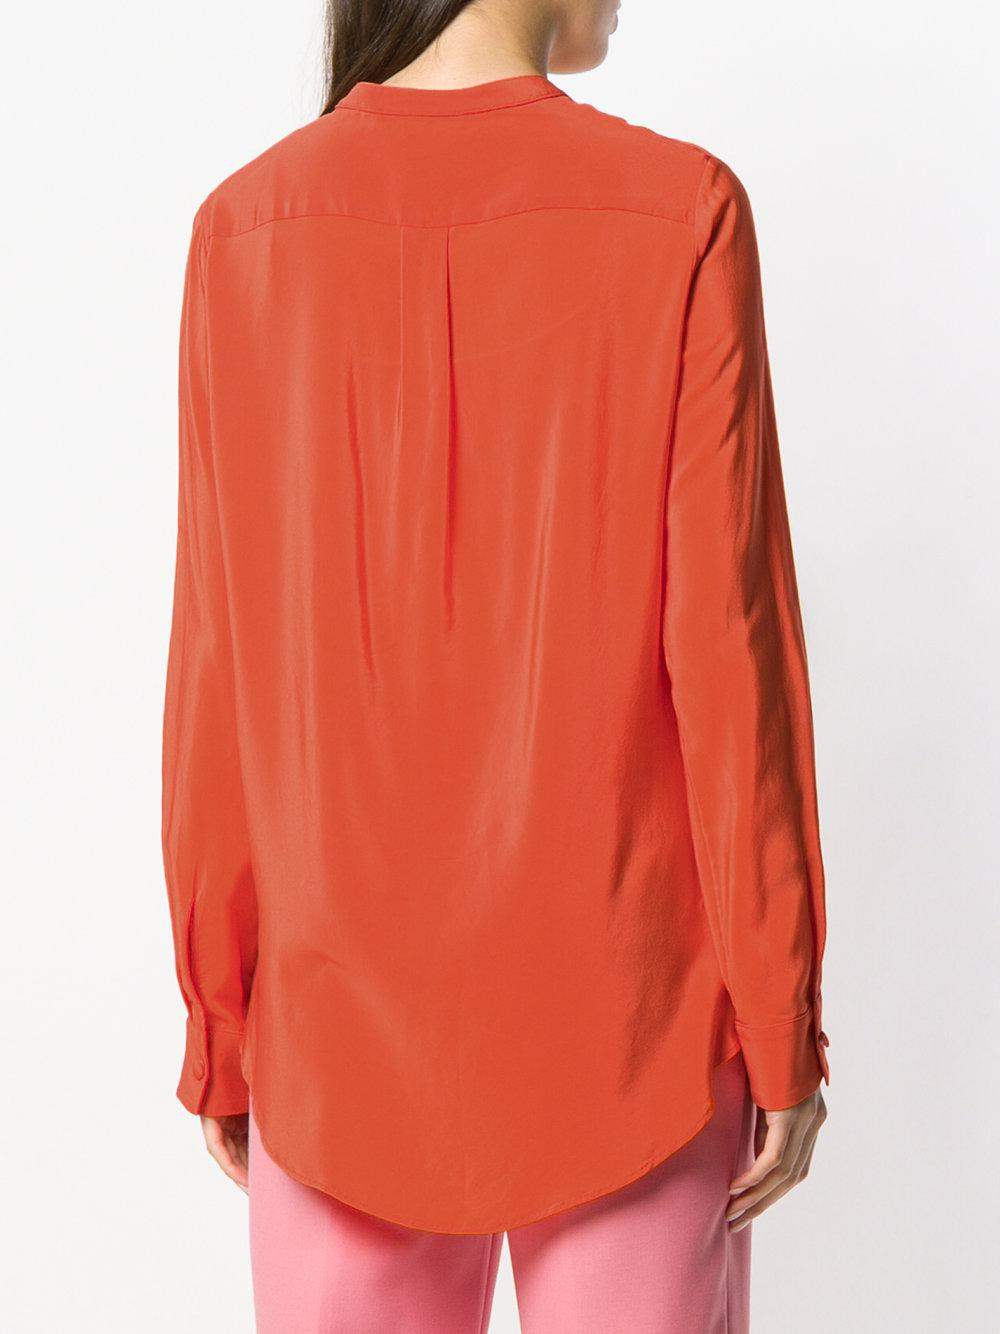 draped detail collarless blouse - Yellow & Orange Erika Cavallini Semi Couture Clearance Latest Collections 6KSGSkt